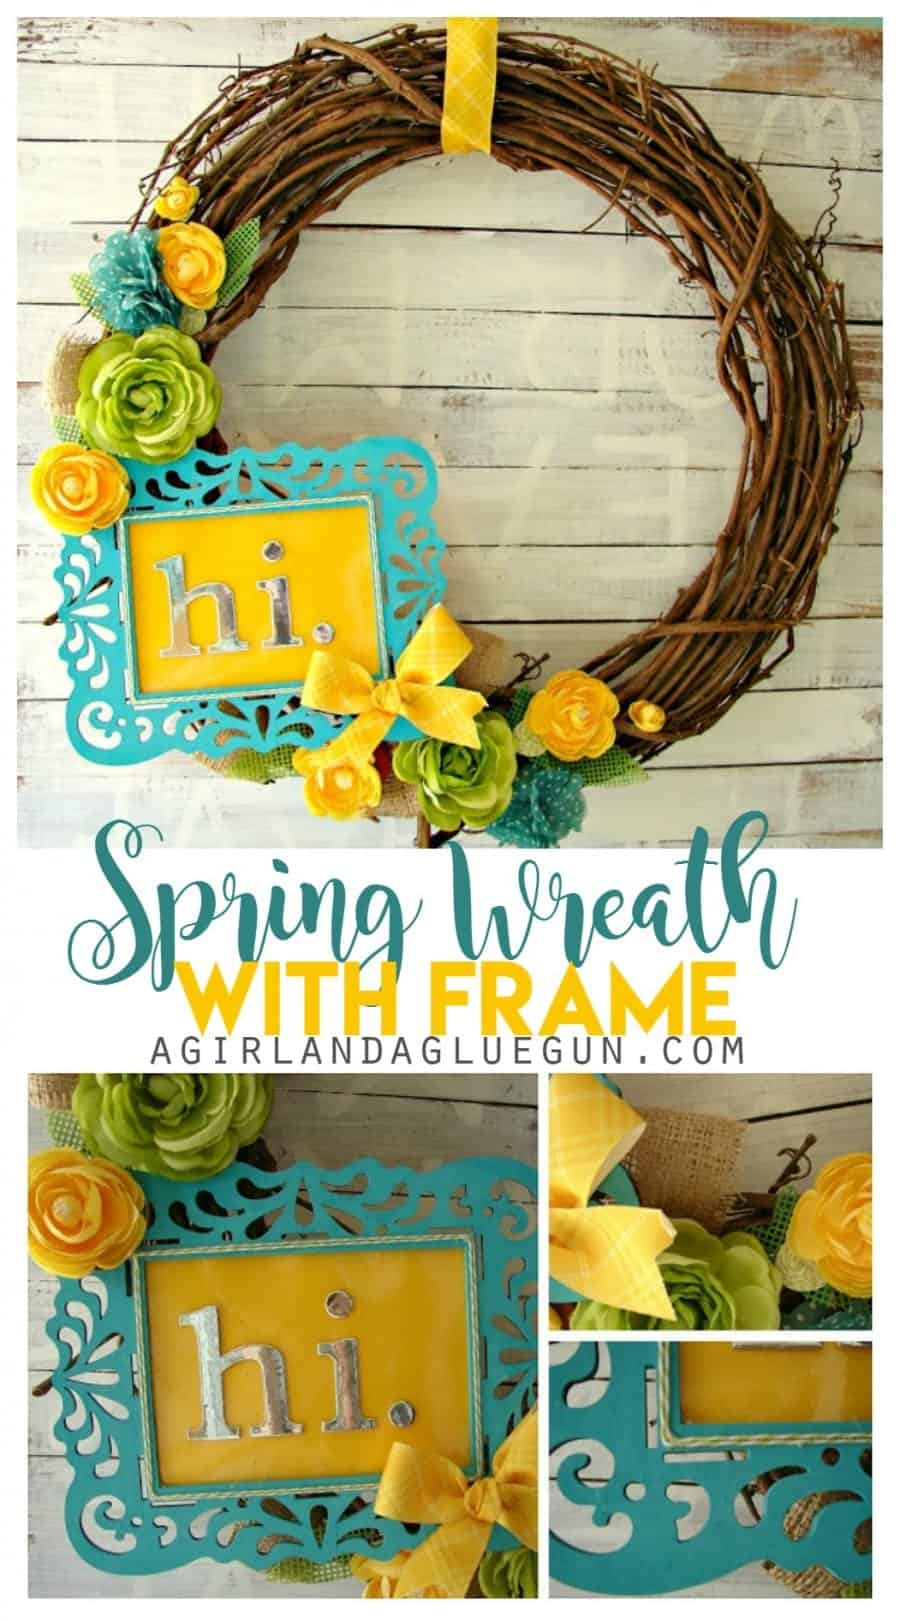 spring floral wreath diy--with cute frame. perfect for your front door. Love the yellow and blue!